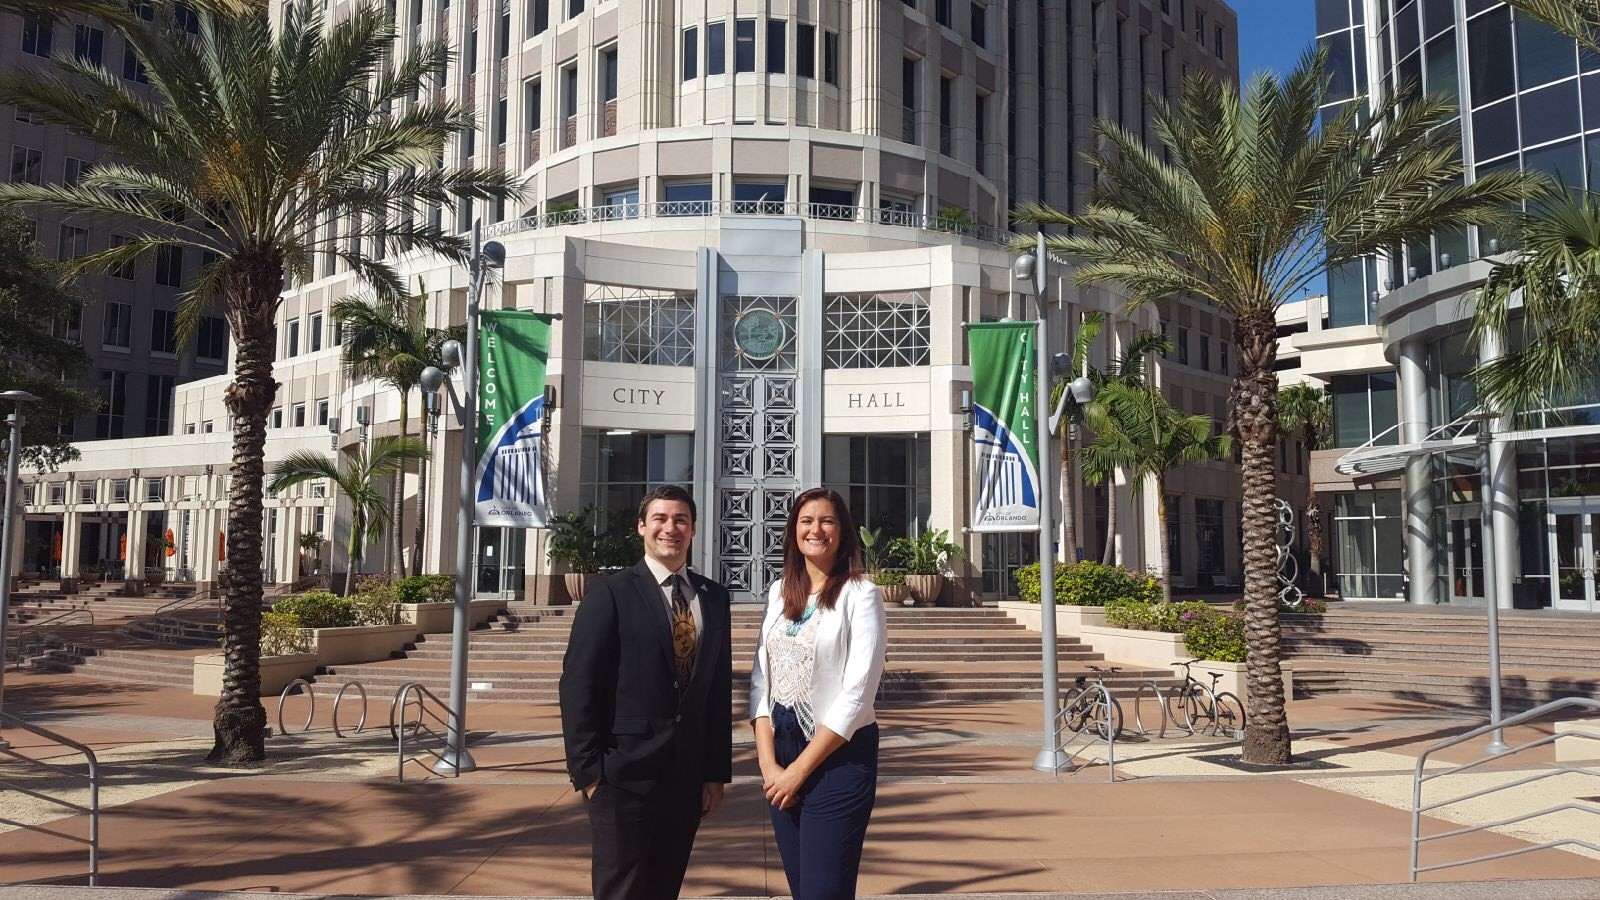 Chris Castro '10 and Brittany Sellers '13MA '16PhD are two of several Knights working to make Orlando one of the most environmentally friendly cities through the Green Works Initiative.